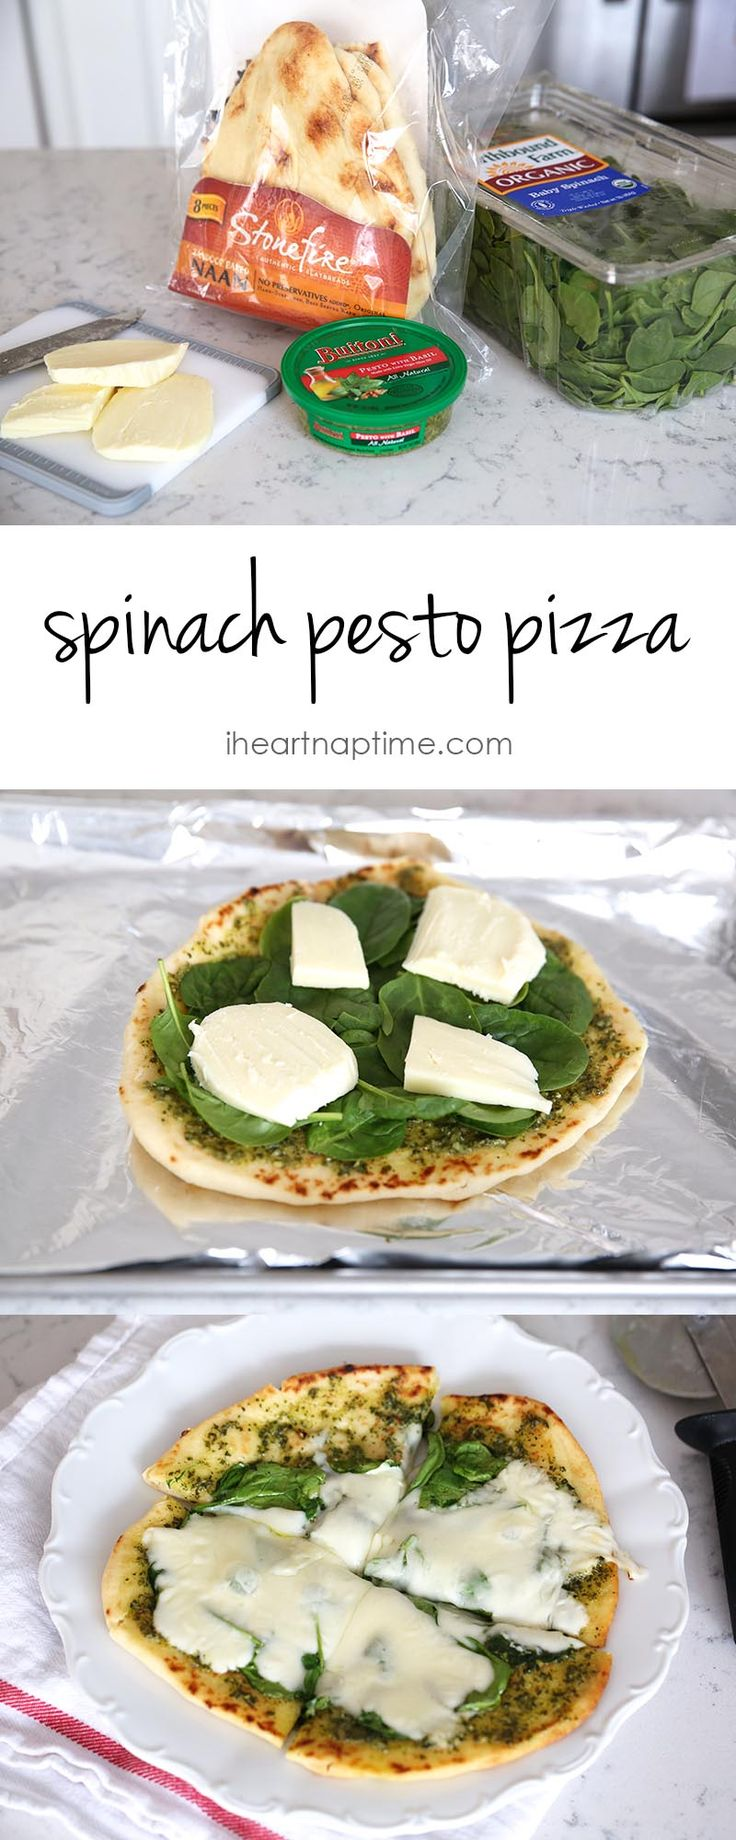 Spinach pesto pizza with naan